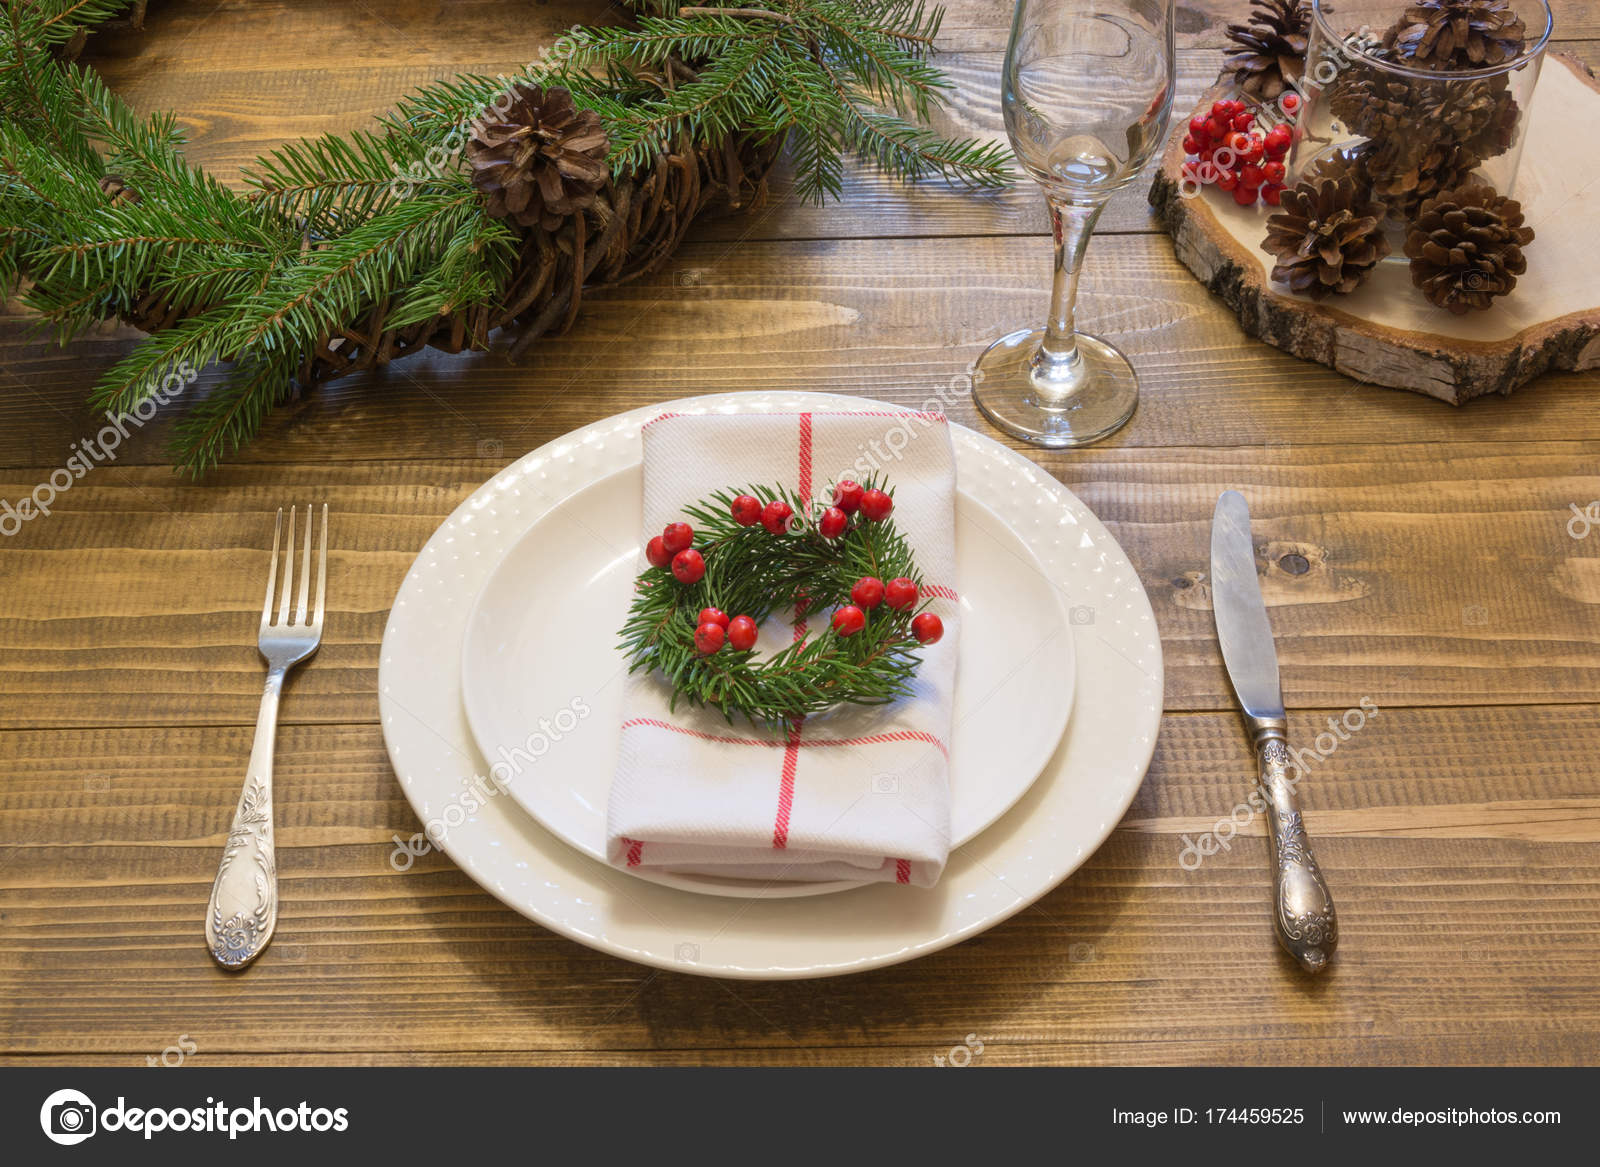 Christmas Place Setting With Vintage Dishware, Silverware And Decorations  On Wooden Board. Christmas Wreath